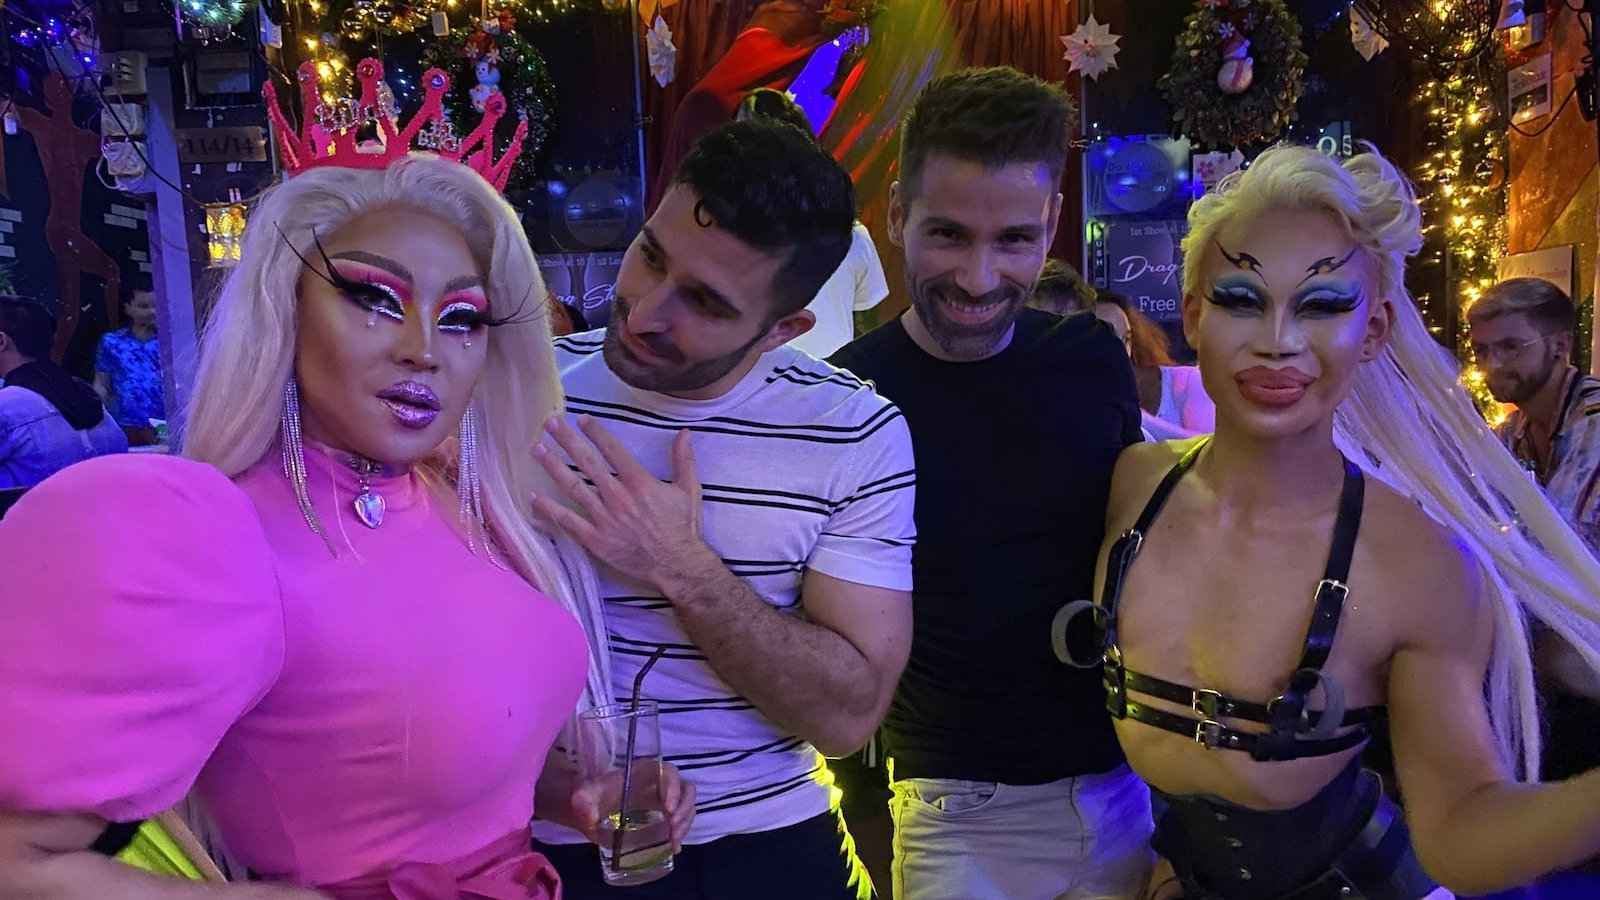 You can join a gay tour of Bangkok's nightlife that will take you to the hottest drag clubs where you can party like a local with the fiercest queens